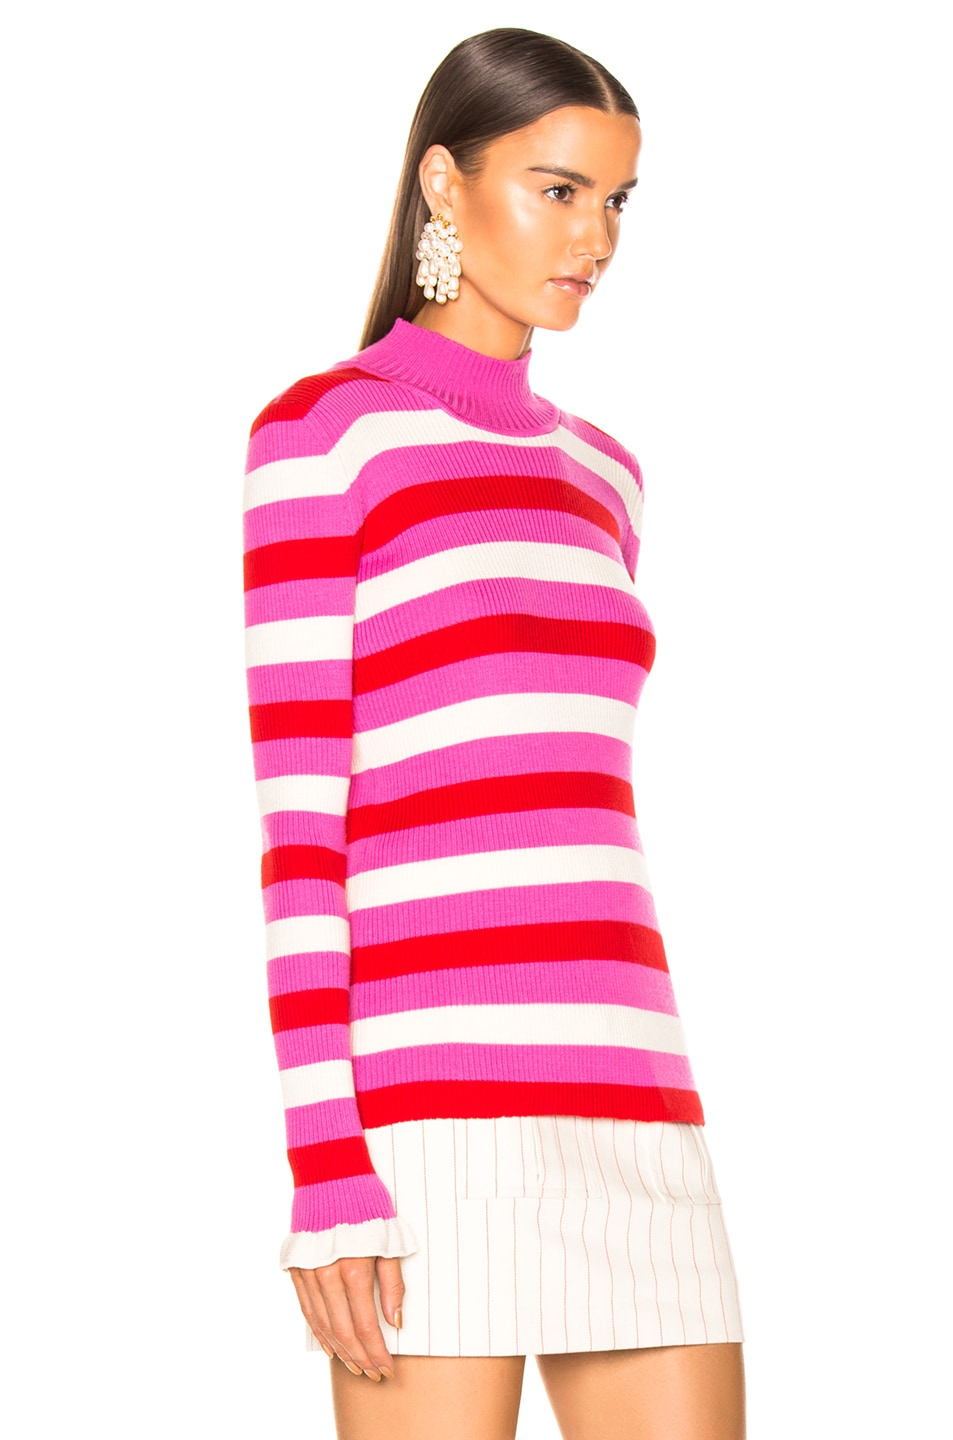 Image 2 of Maggie Marilyn You Make Me Happy Top in Pink, White, Red Stripe